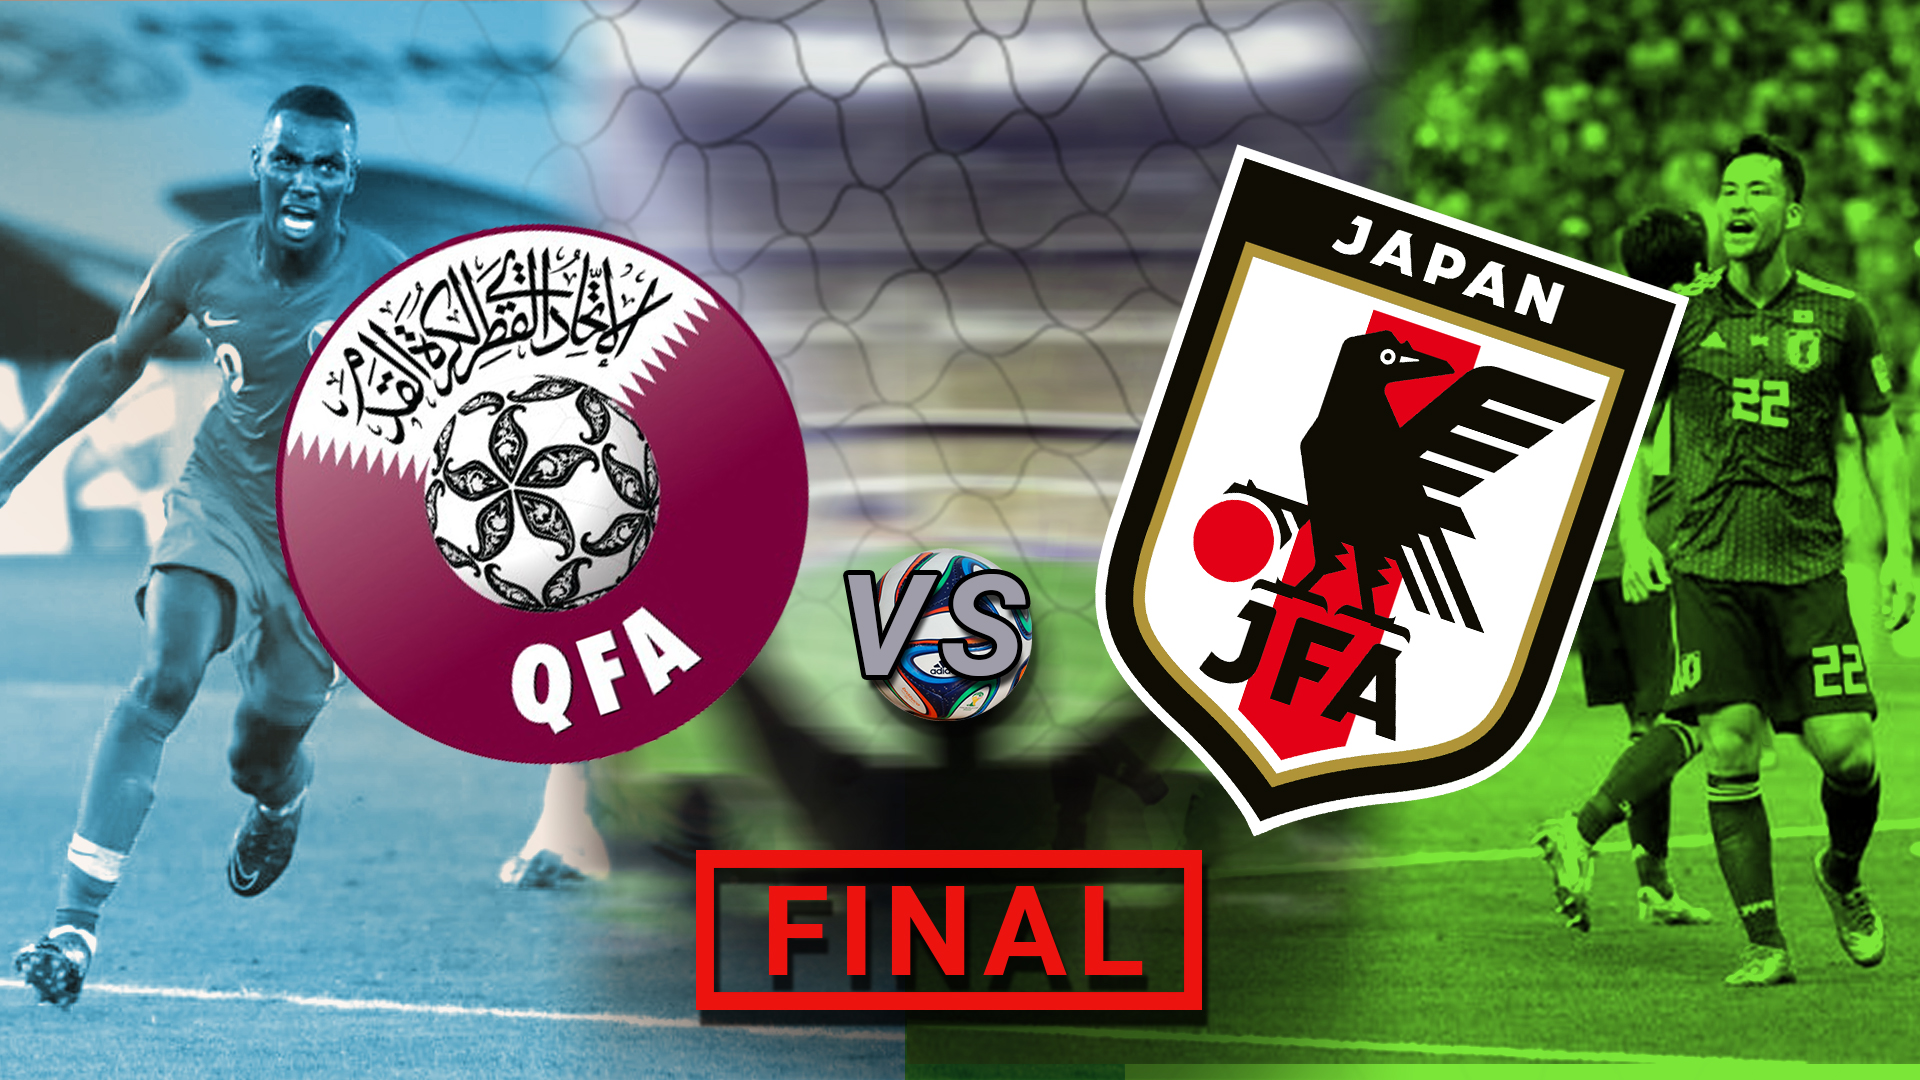 Japan vs Qatar AFC Asian Cup 2019 Final preview